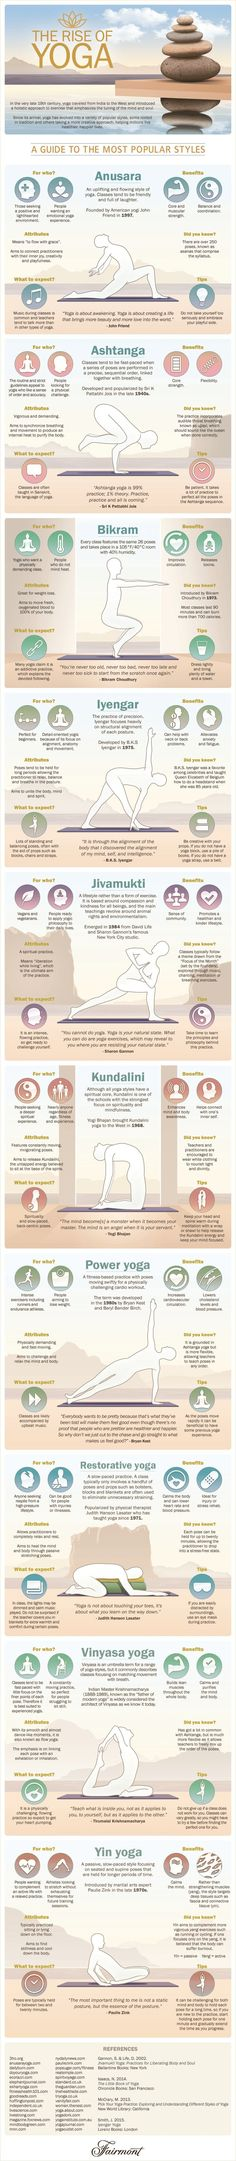 A Guide to Different Yoga Styles (Infographic)